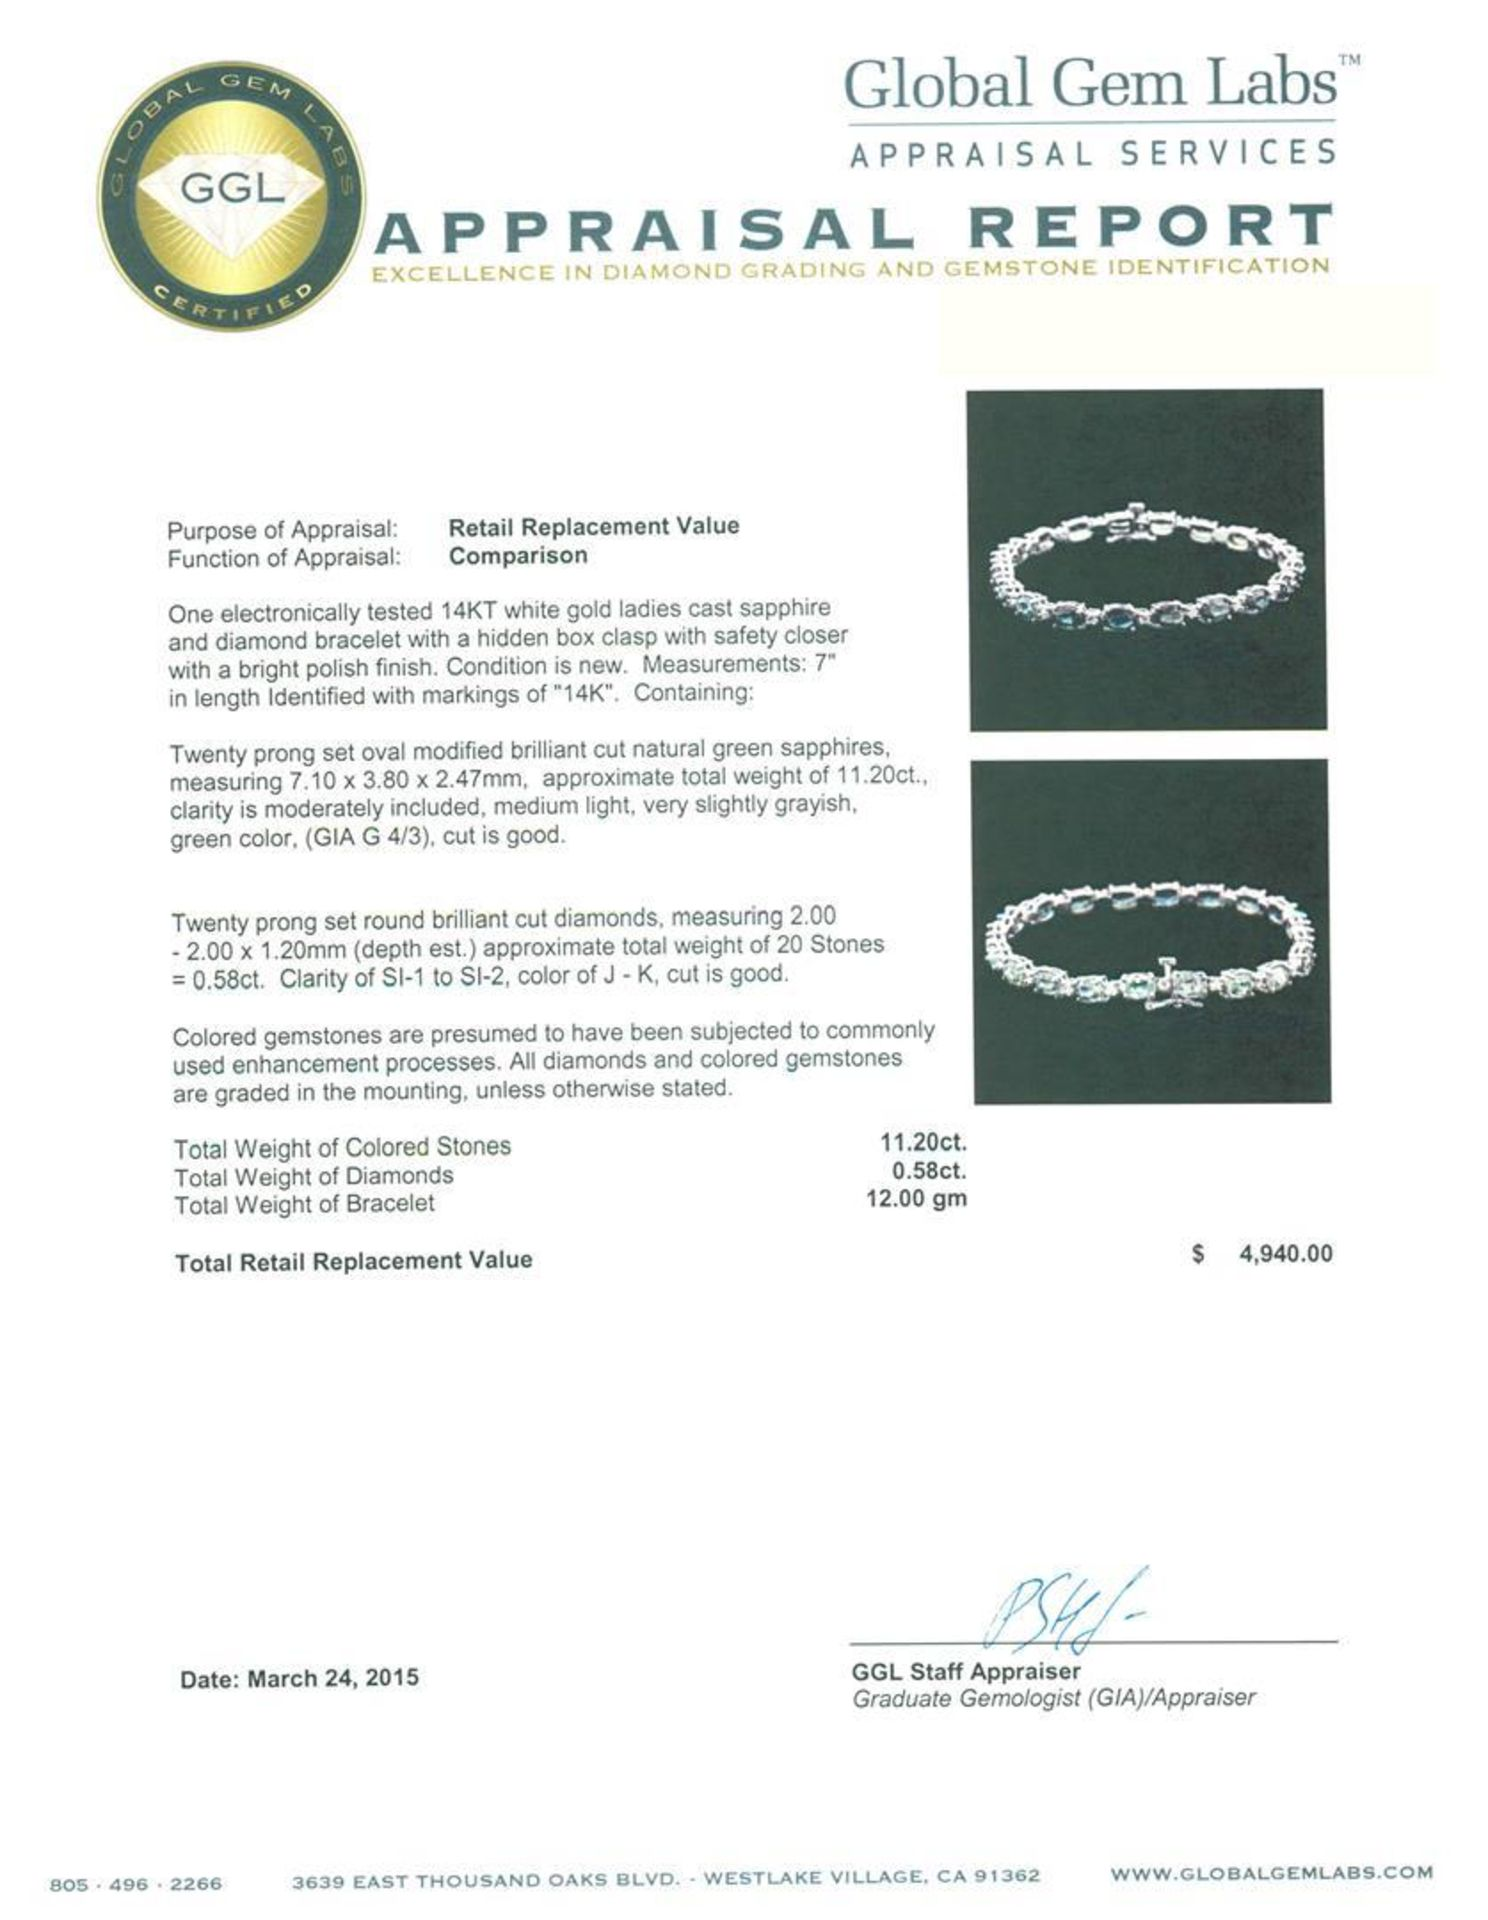 14KT White Gold 11.20 ctw Green Sapphire and Diamond Bracelet - Image 4 of 4